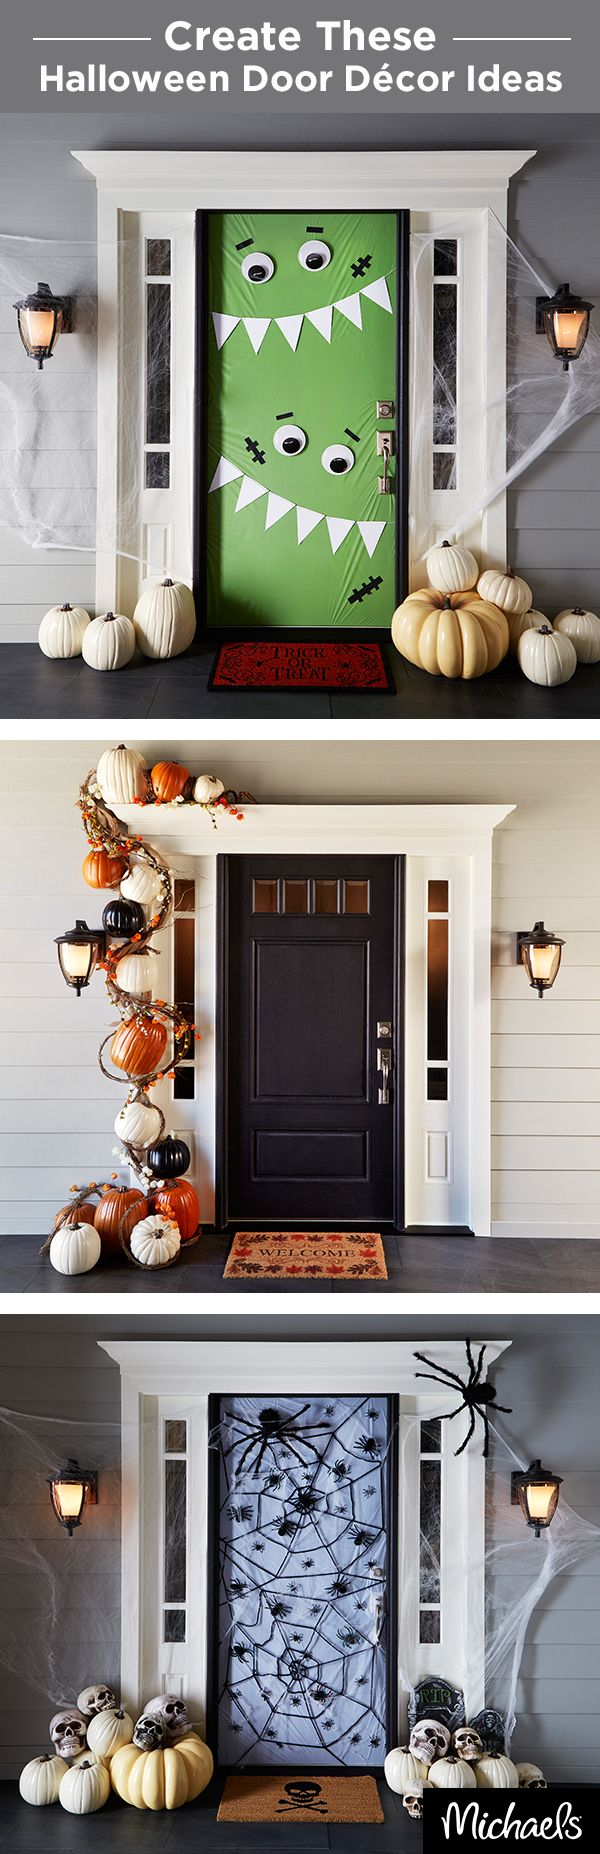 halloween decorations decorate your front door for trick or treaters this halloween these 3 door dcor ideas are simple to make and will welcome even the